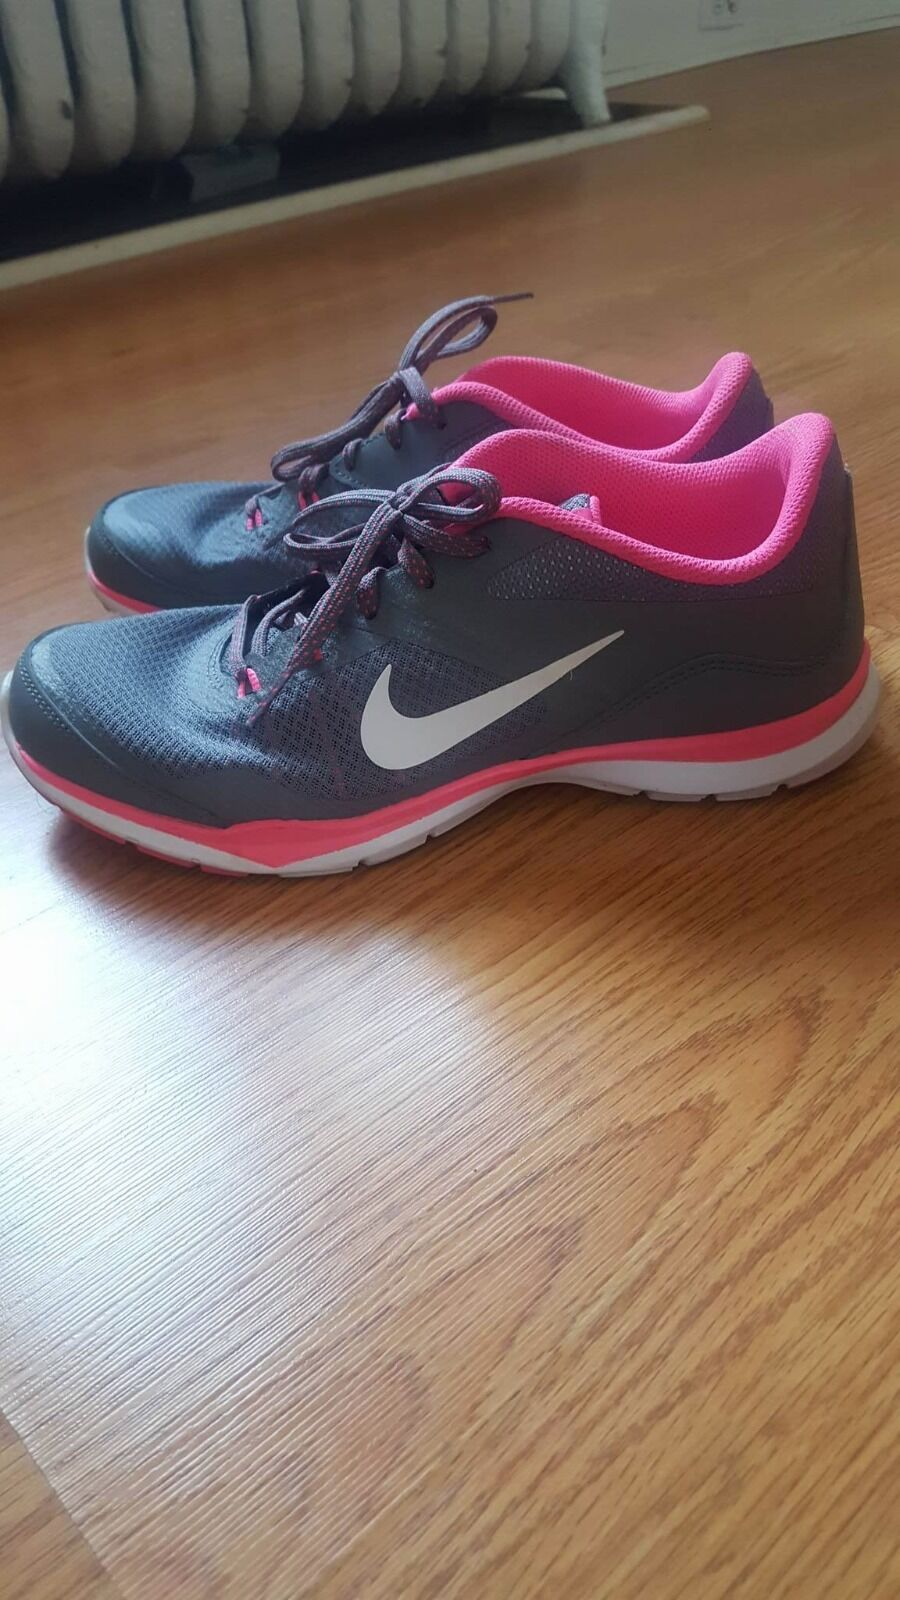 Women's Nike Gray and Pink Sneakers The latest discount shoes for men and women